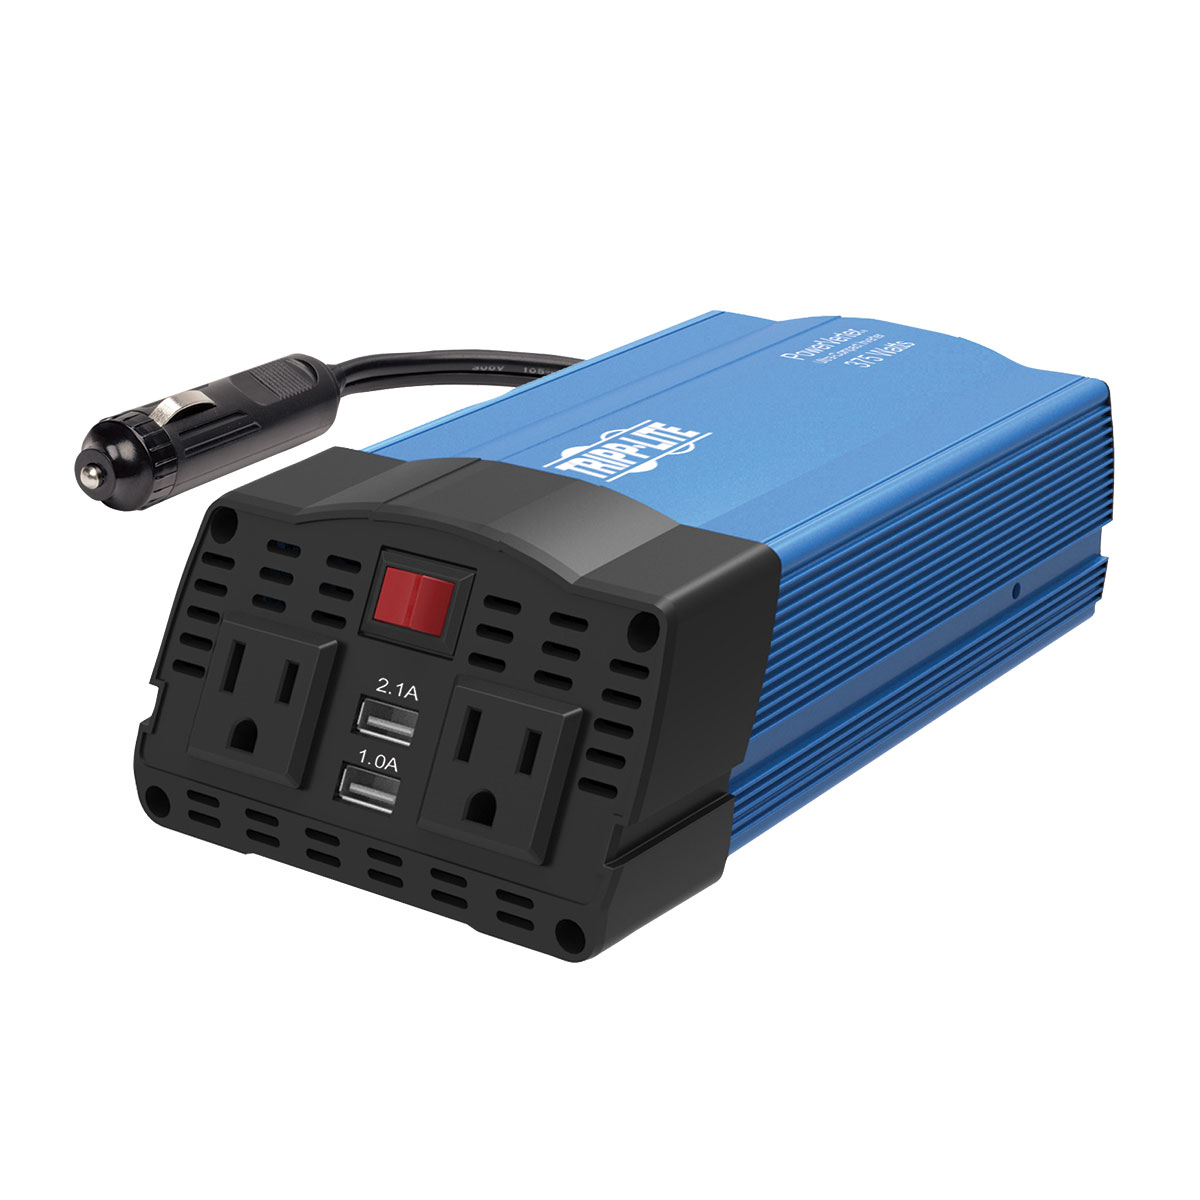 200 Watt Power Inverter Car Adapter tripp lite 375w ultra-compact car power inverter with 2 ac outlets, 2 usb  charging ports ac to dc - dc to ac power inverter - 375 watt